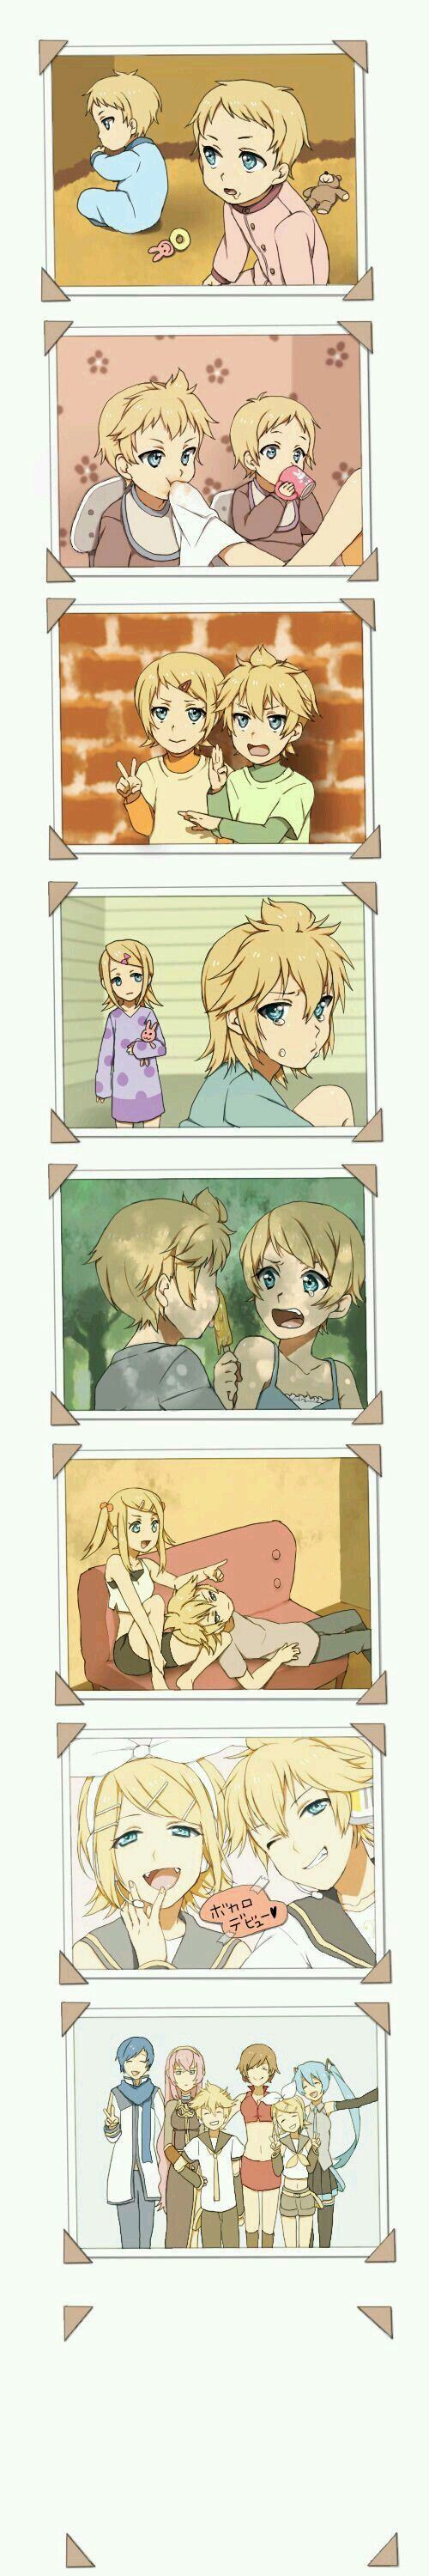 Kagamine Twins Forever >w<